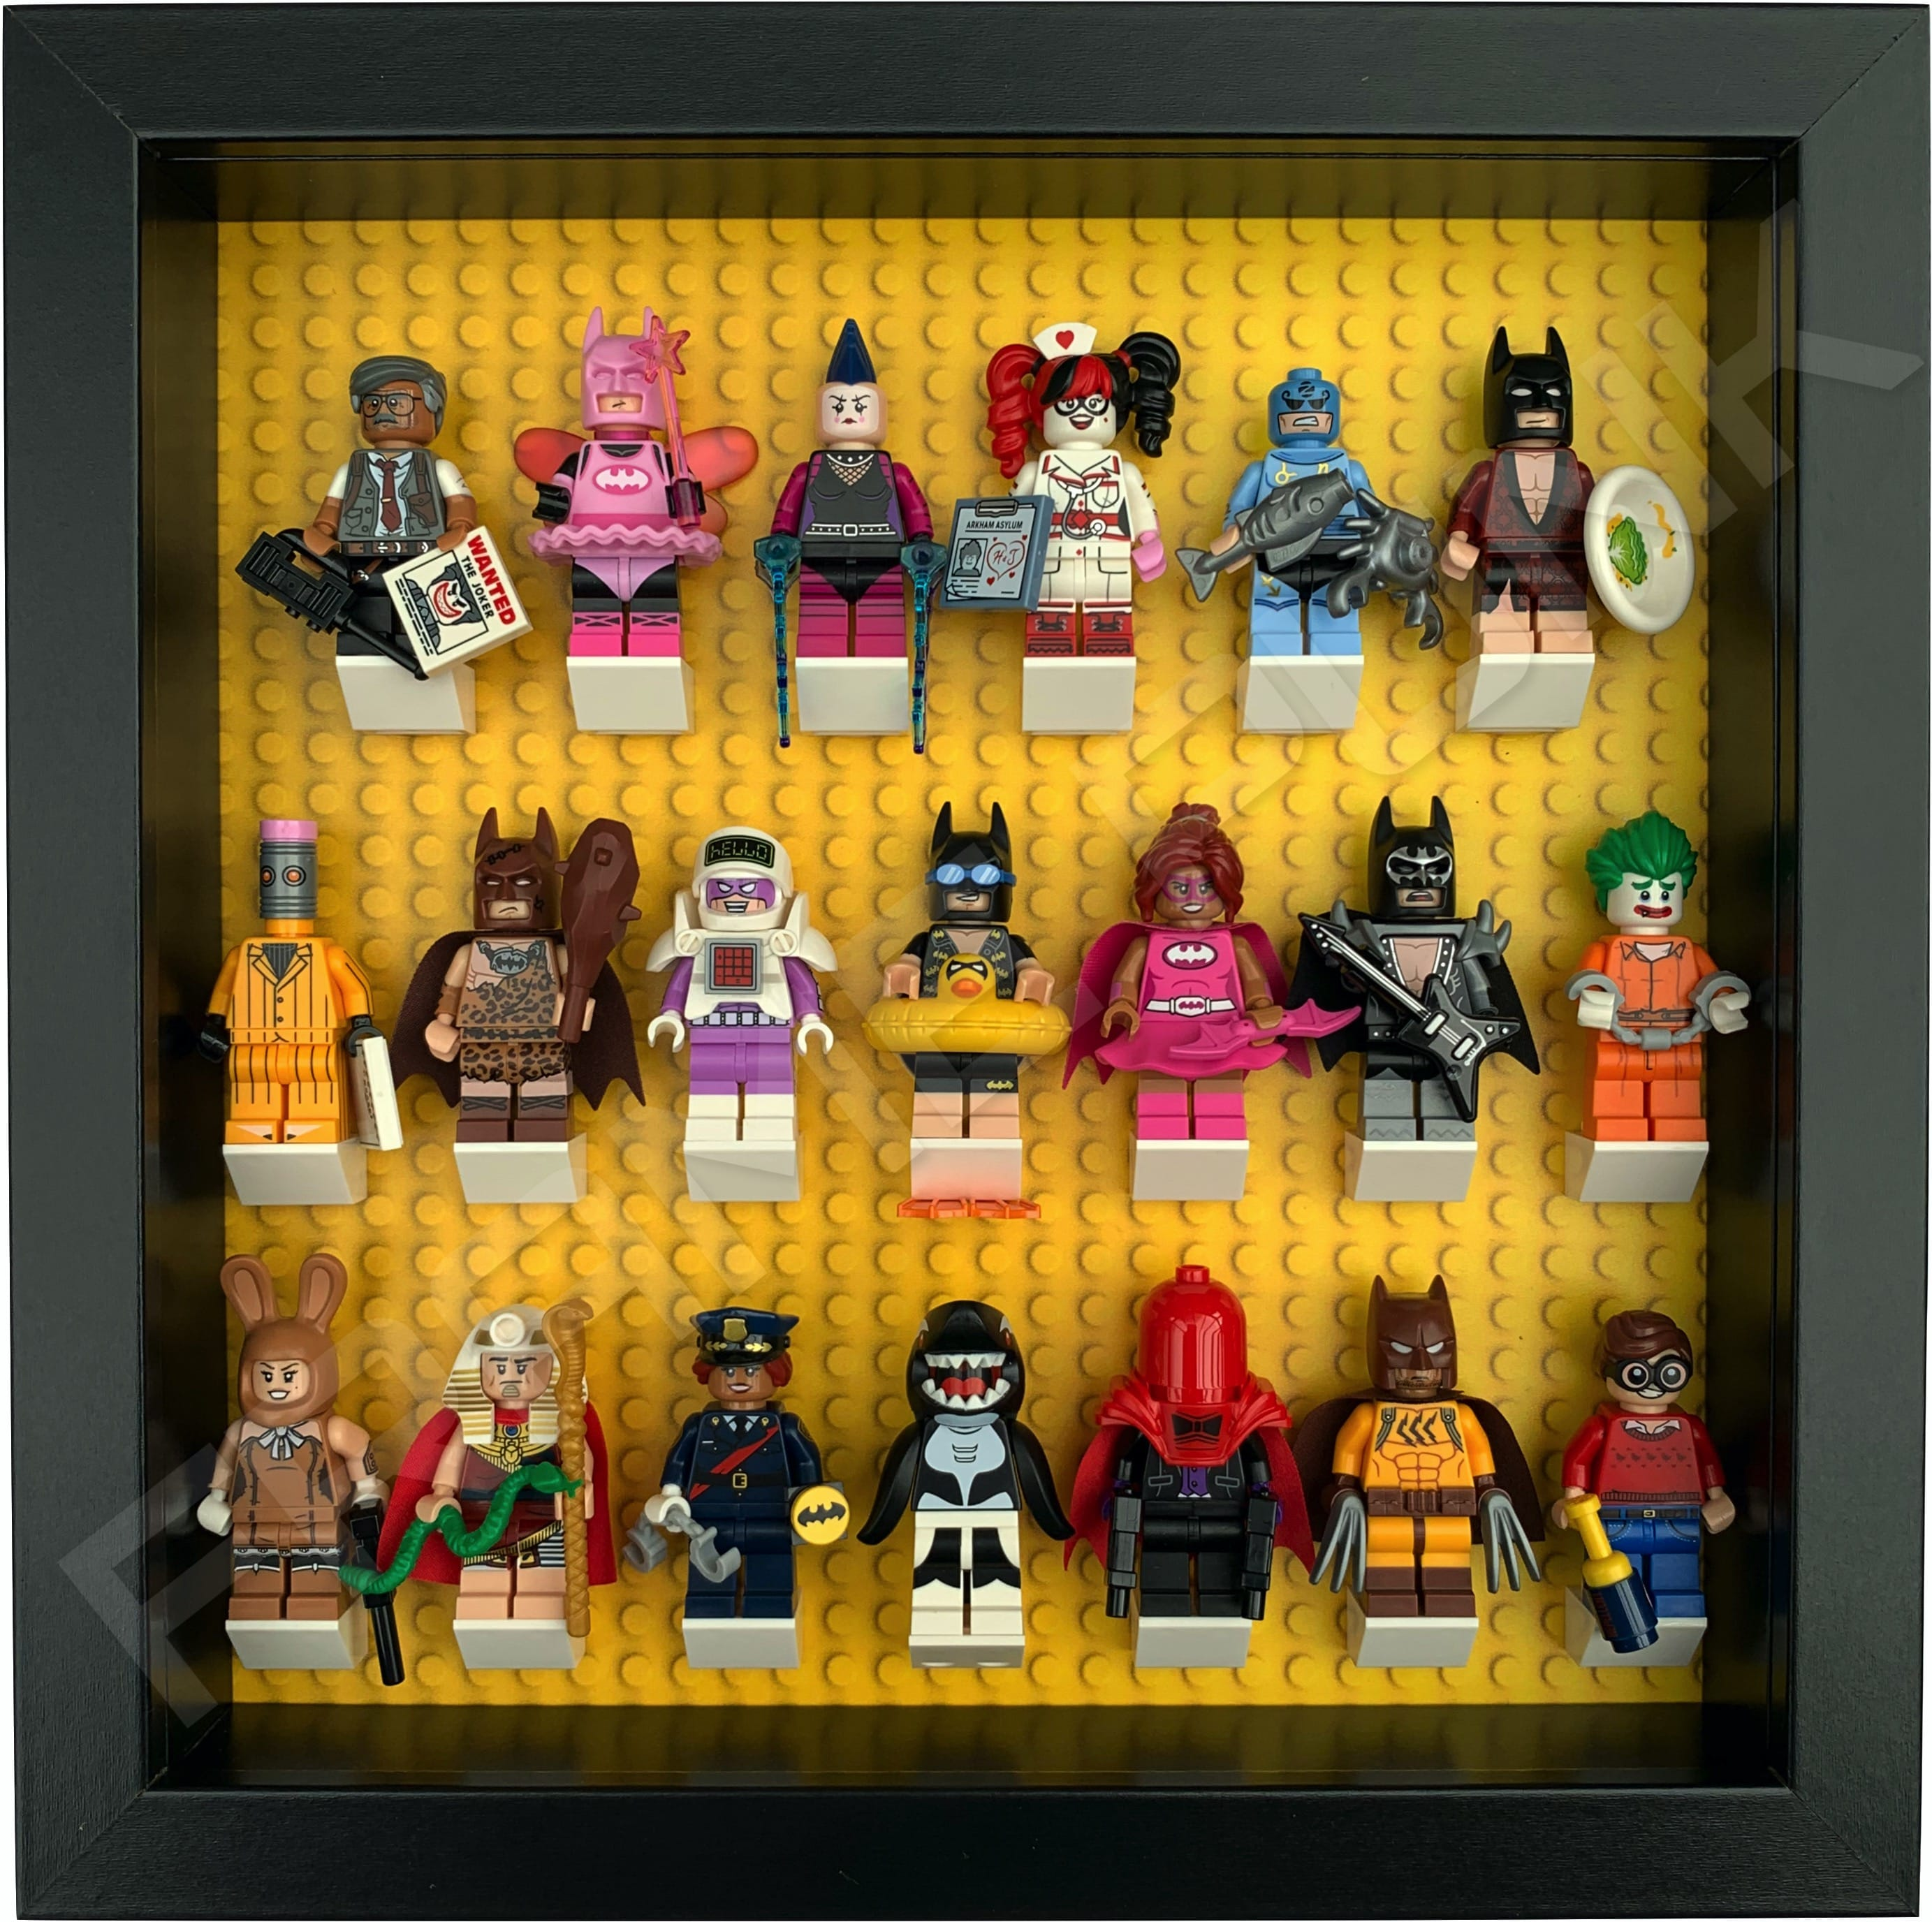 Display Case Frame for Lego Batman Movie Series 1 or 2 Minifigures figures